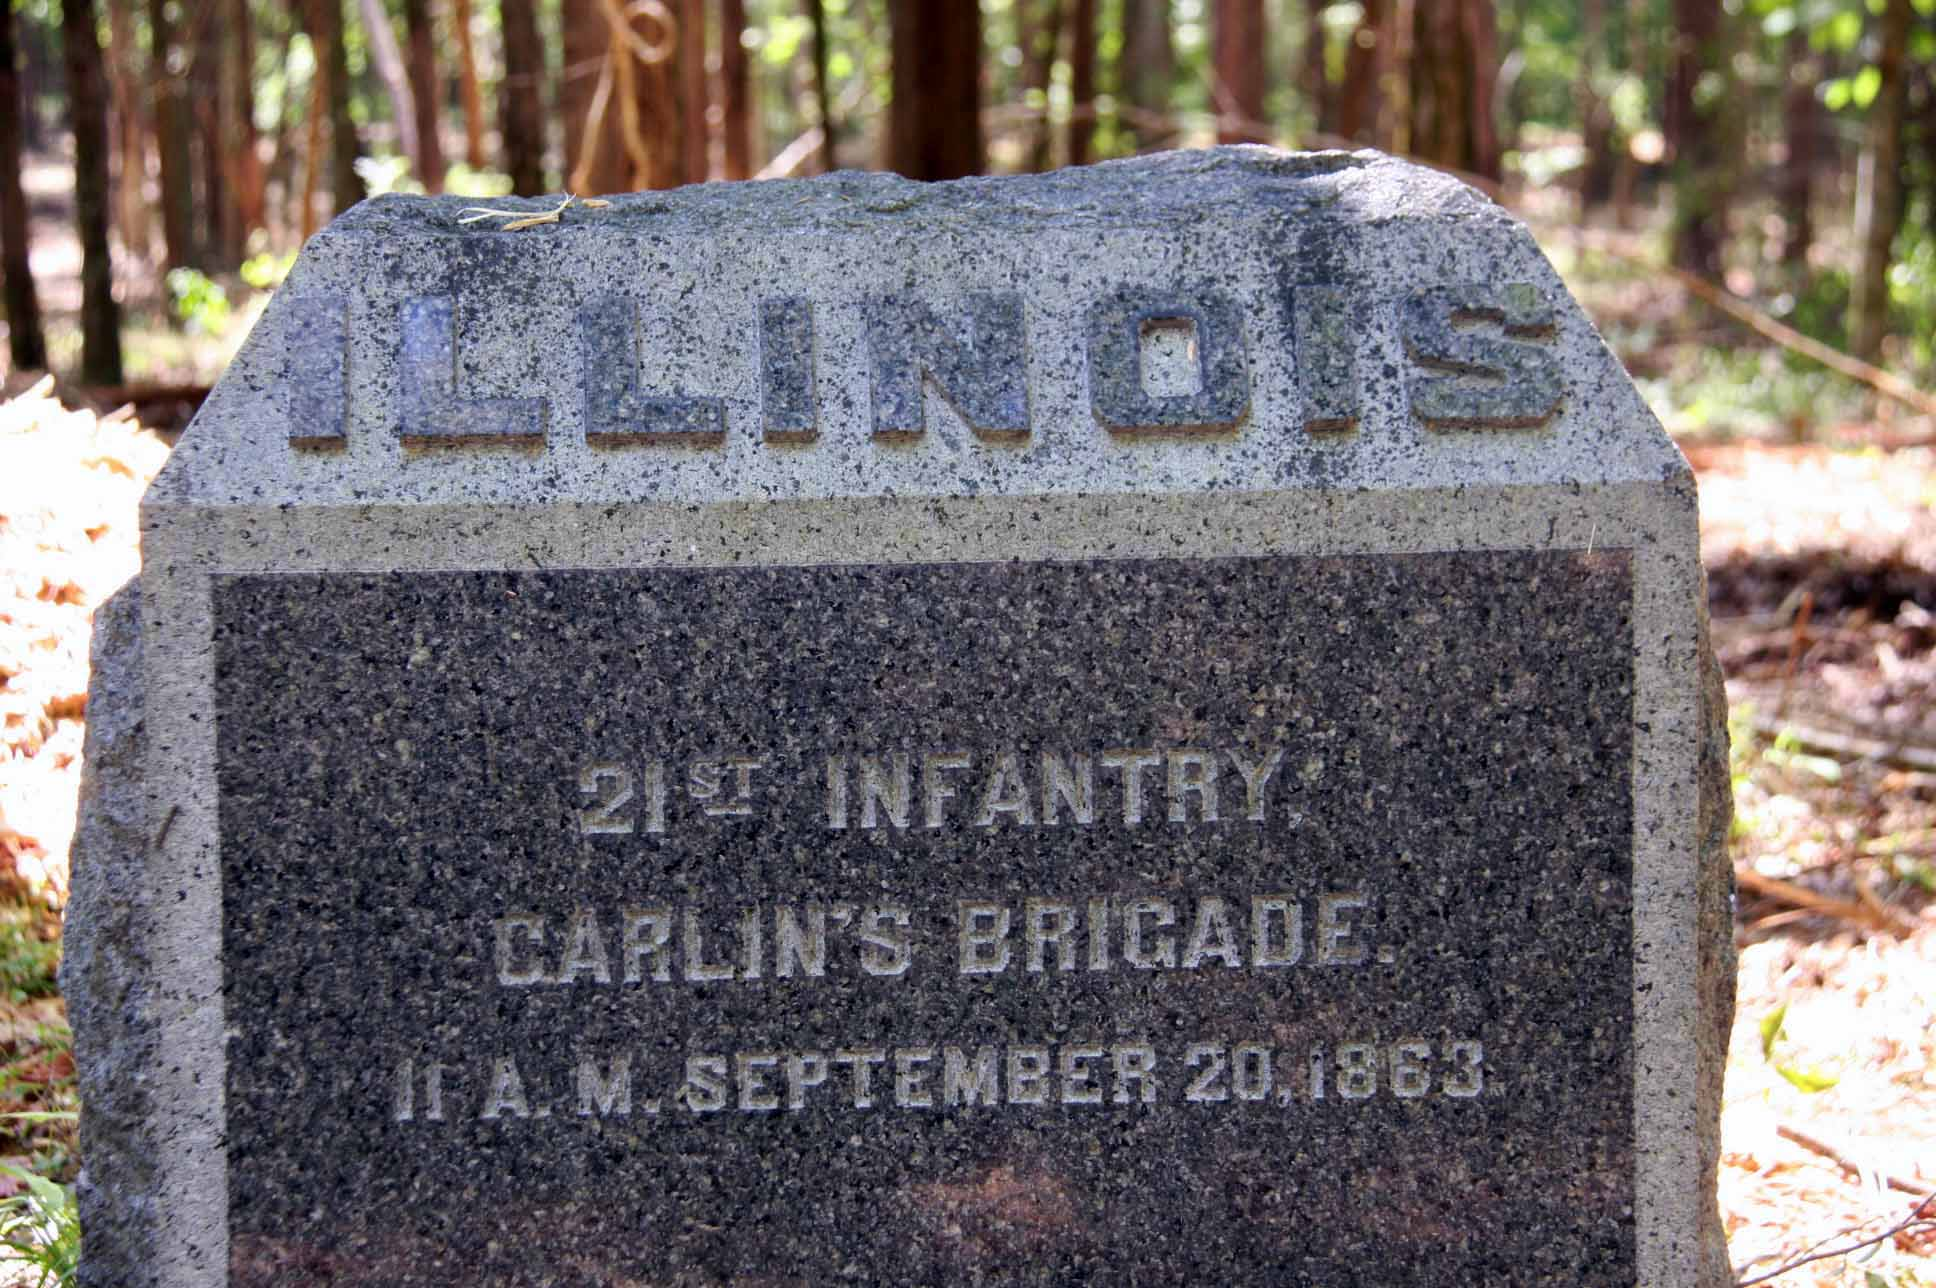 21st Illinois Infantry Regiment Marker, click photo to enlarge.